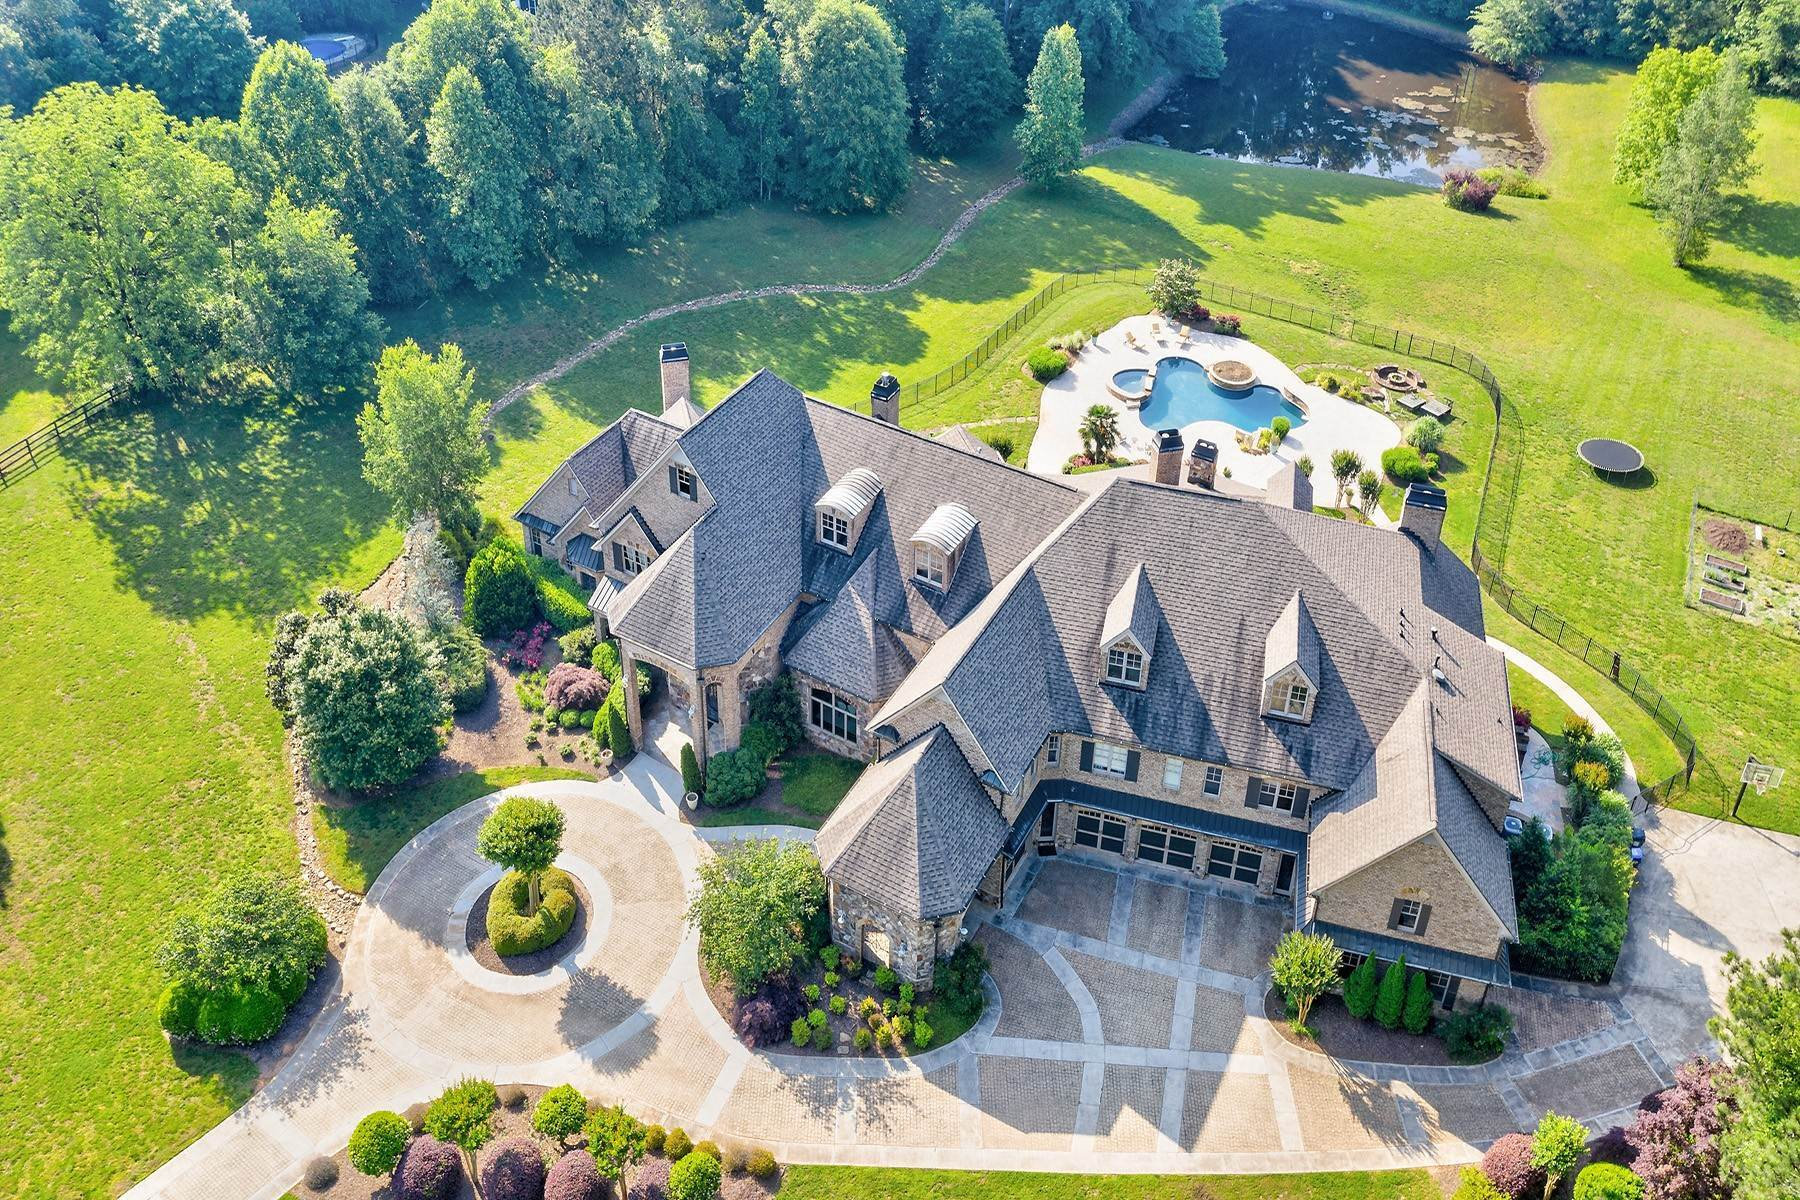 Single Family Homes for Sale at A Dreamy European-Style Estate Waits For Your Arrival 4186 N Arnold Mill Road Woodstock, Georgia 30188 United States